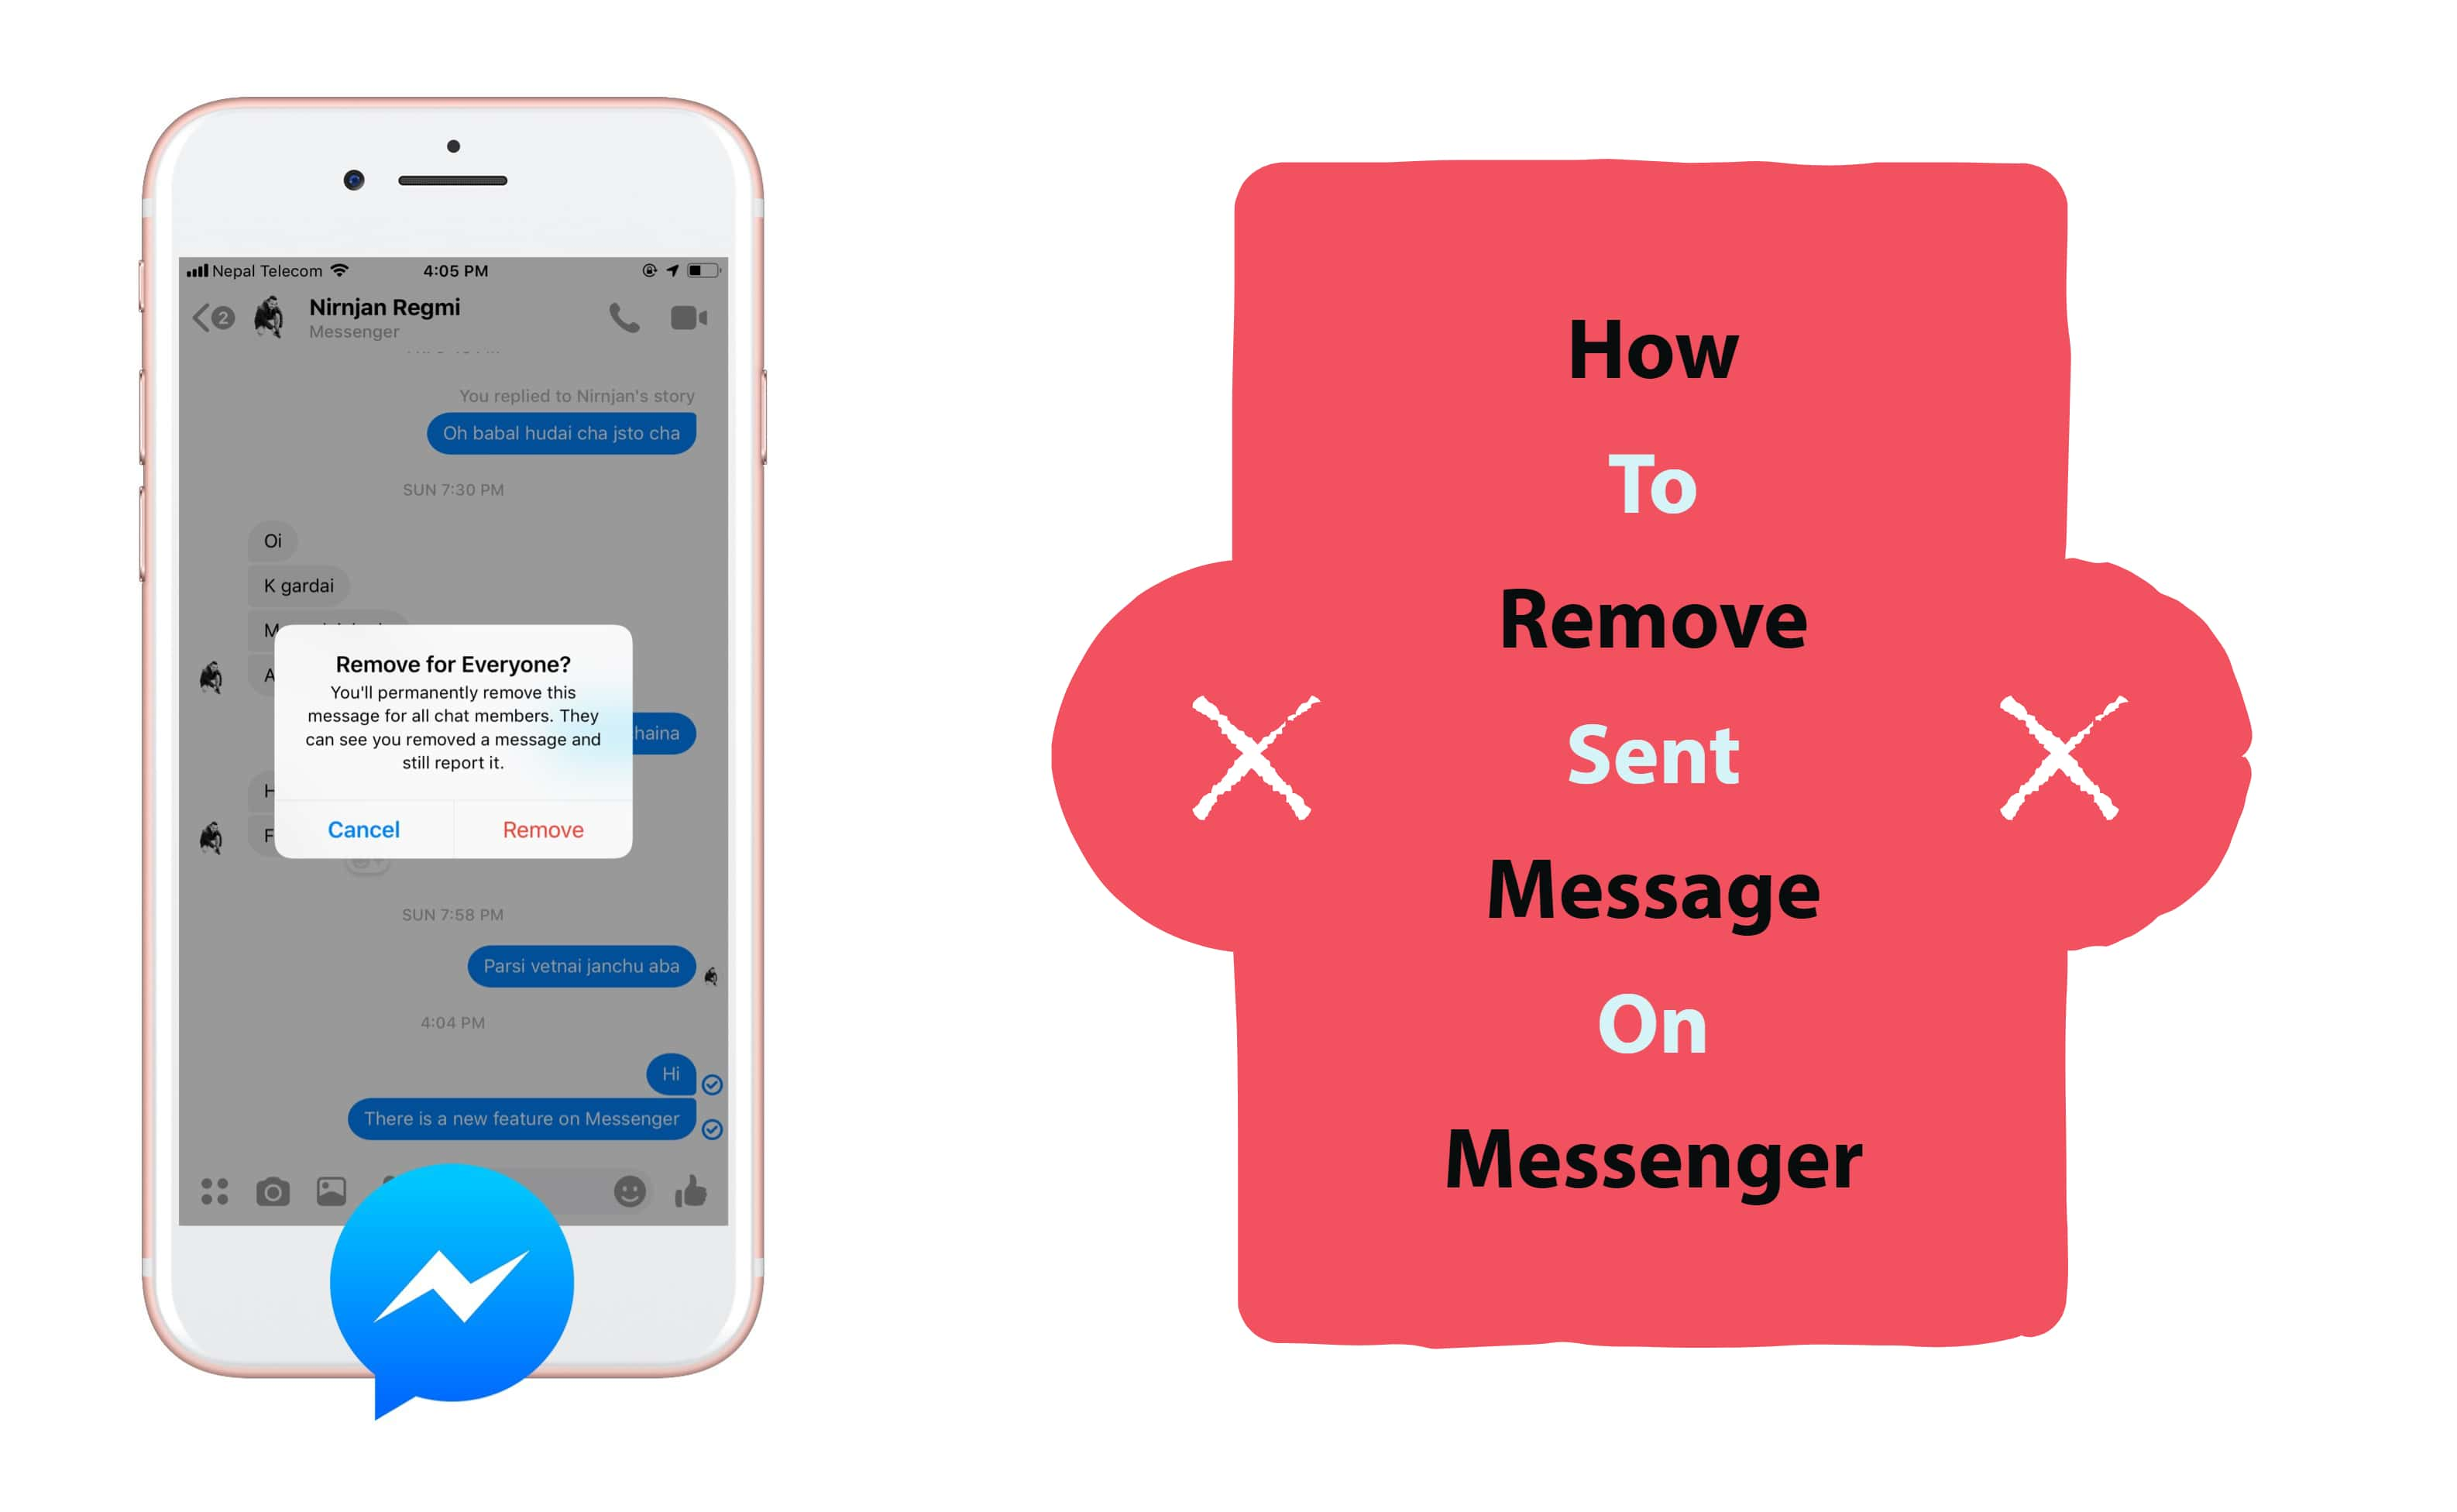 How To Remove Sent Message On Messenger